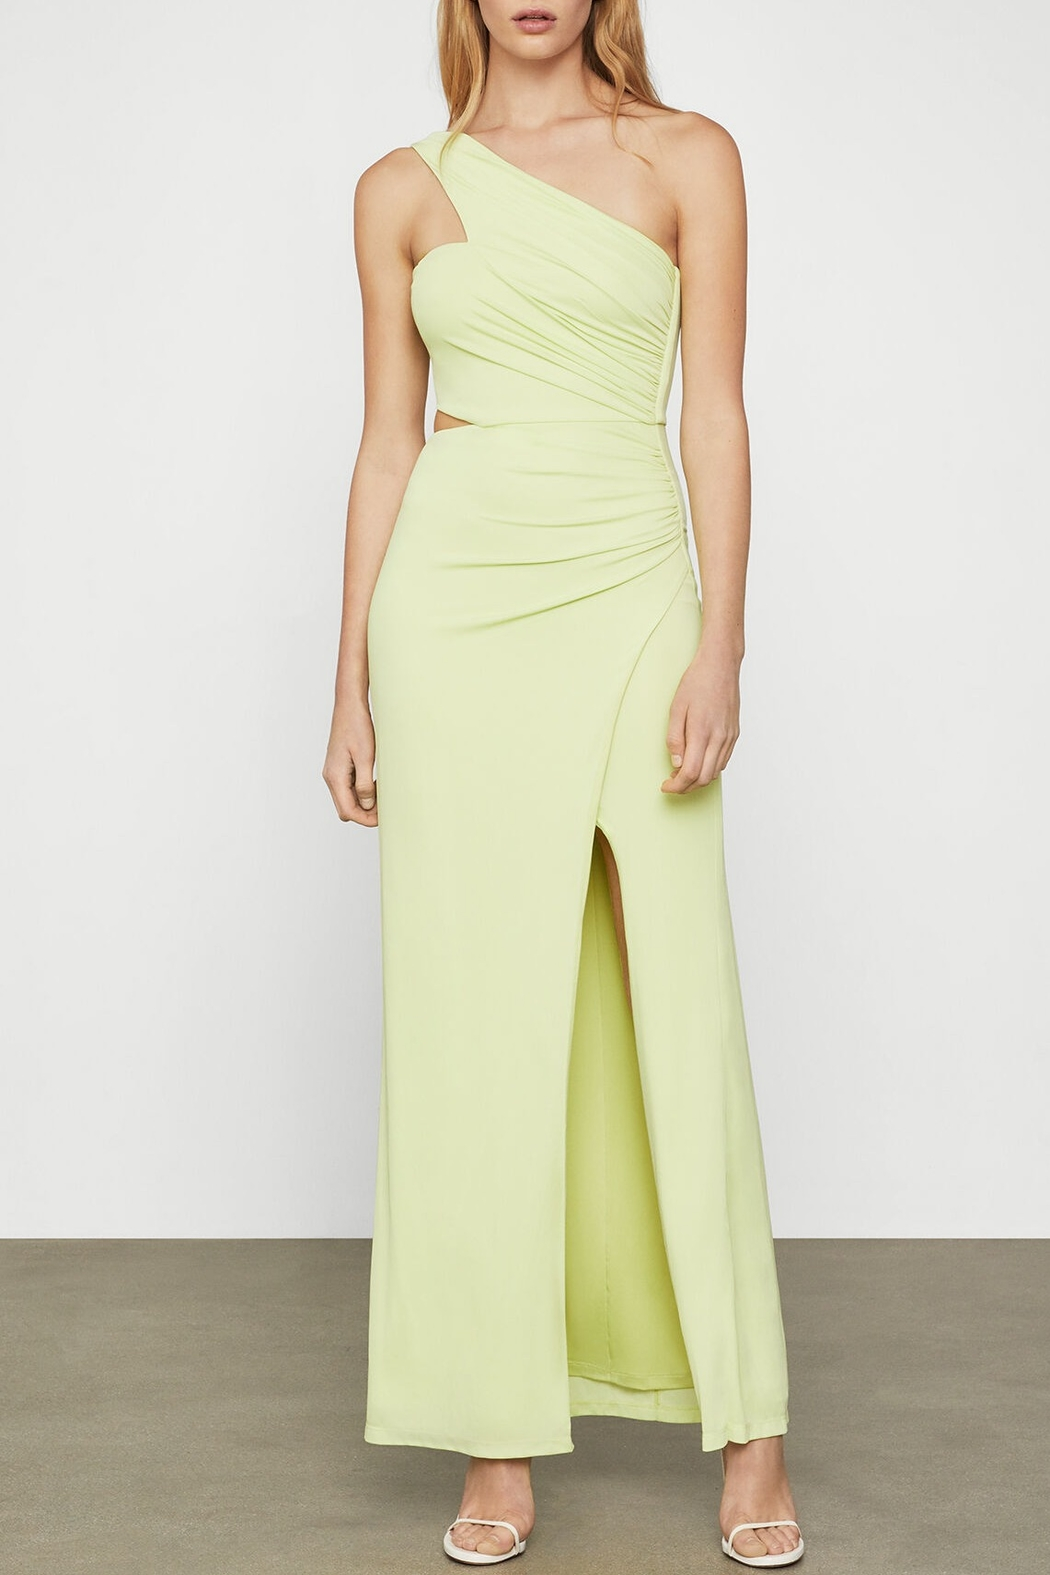 BCBG MAXAZRIA Asymmetric Satin Cutout Gown - Front Cropped Image